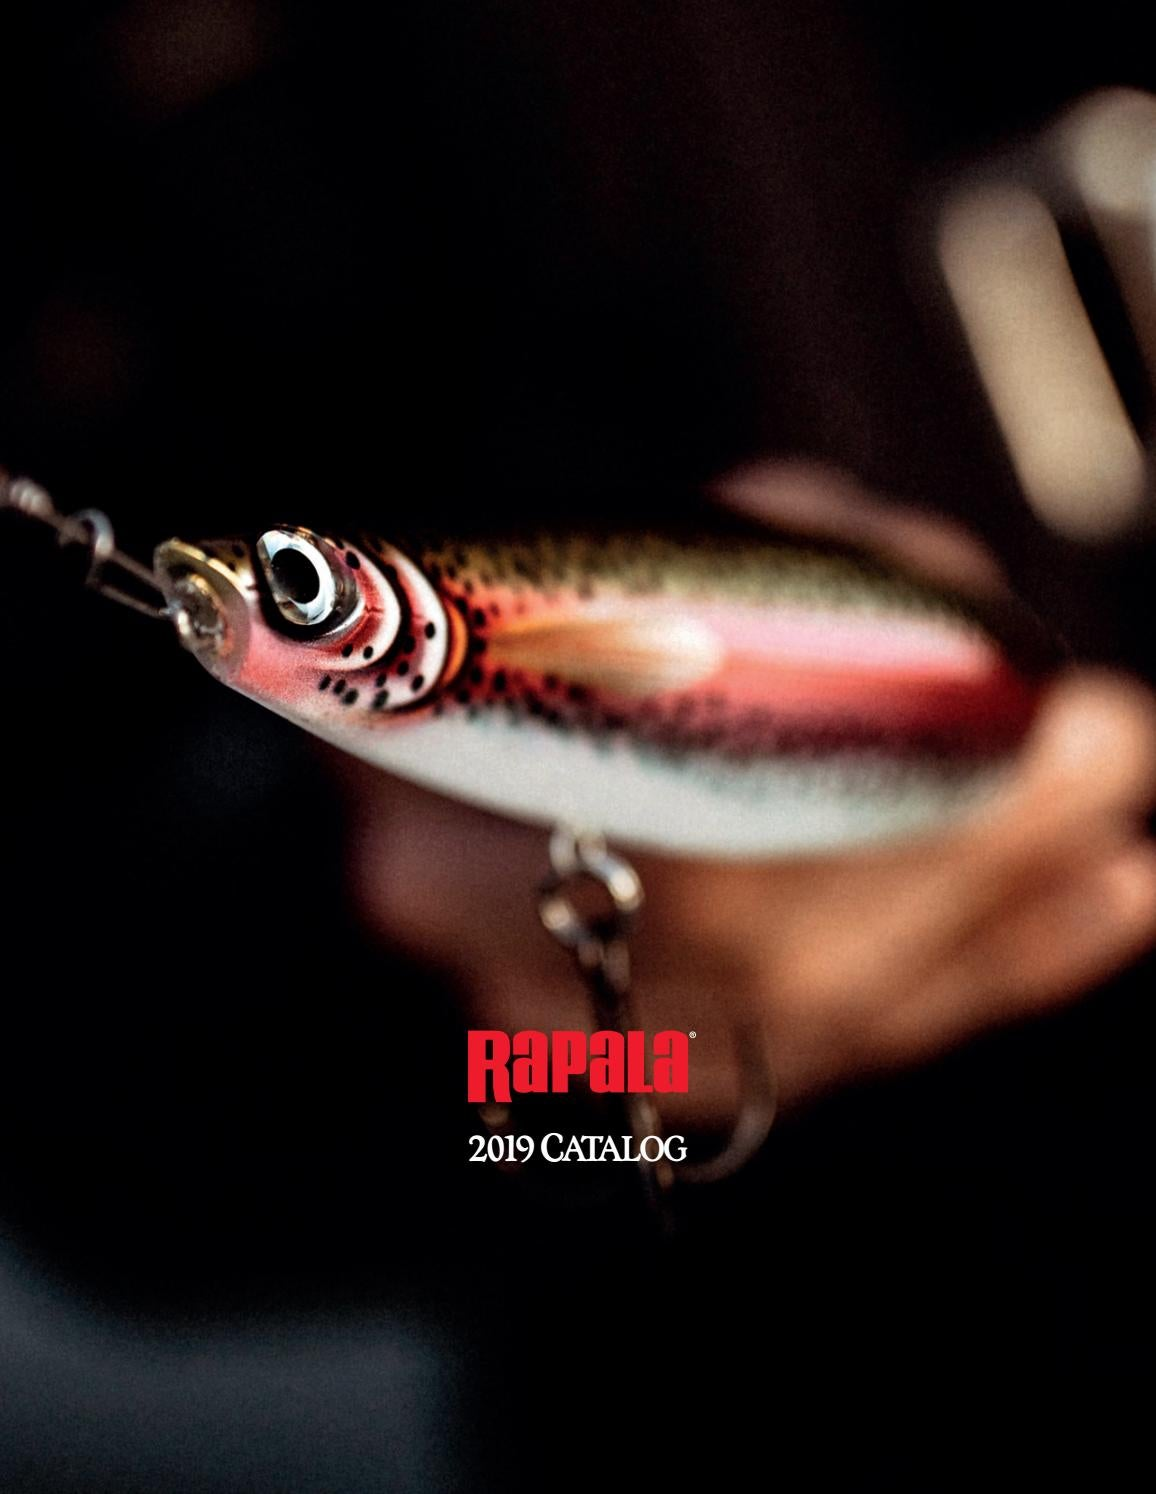 NEW Rapala 2.5-inch Suspending RattlIng Glass Minnow Husky Jerk Fishing Lure